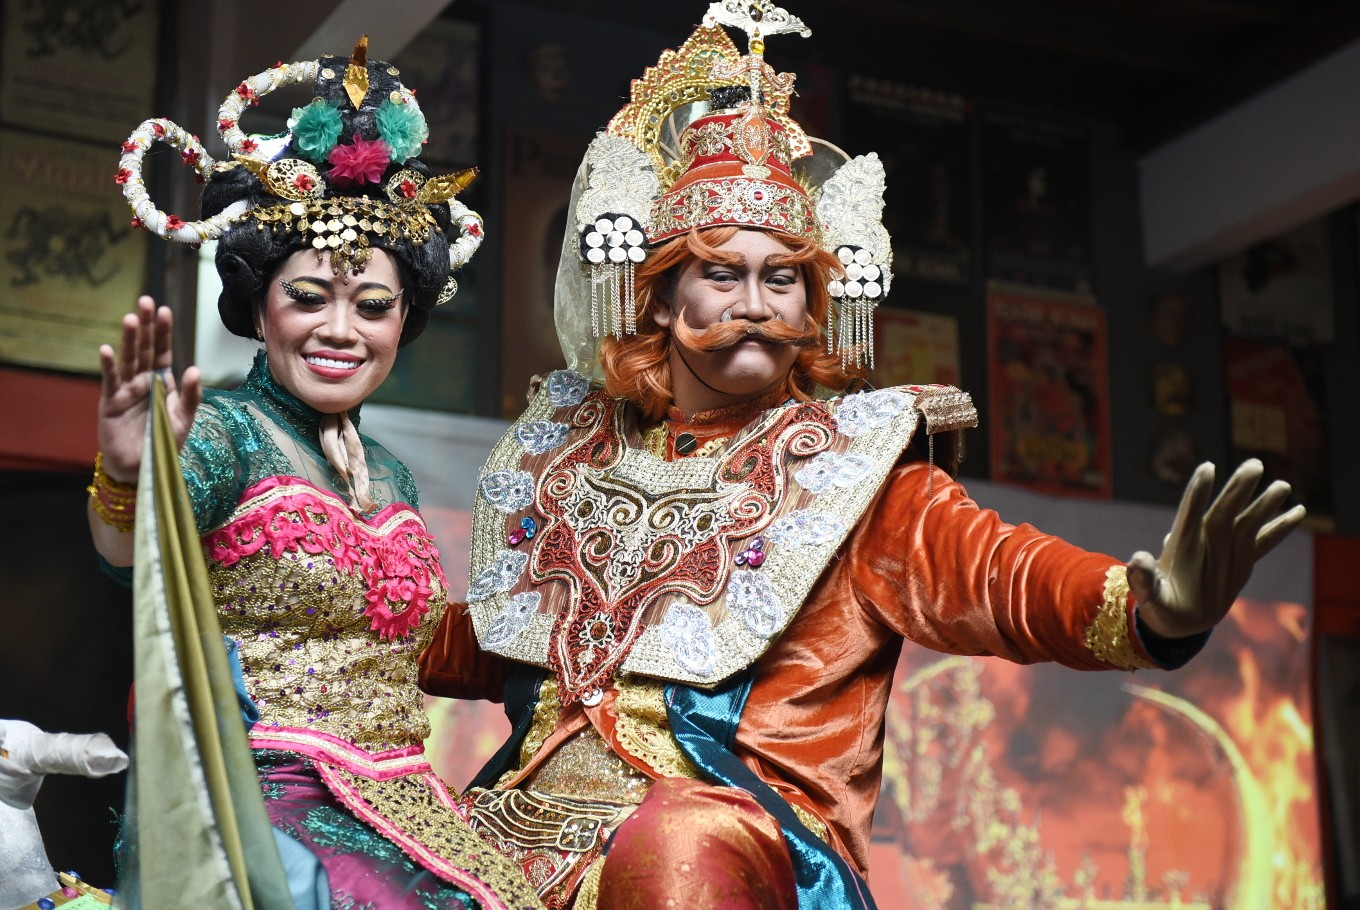 Teater Koma to add modern touch in upcoming 'Mahabarata' play